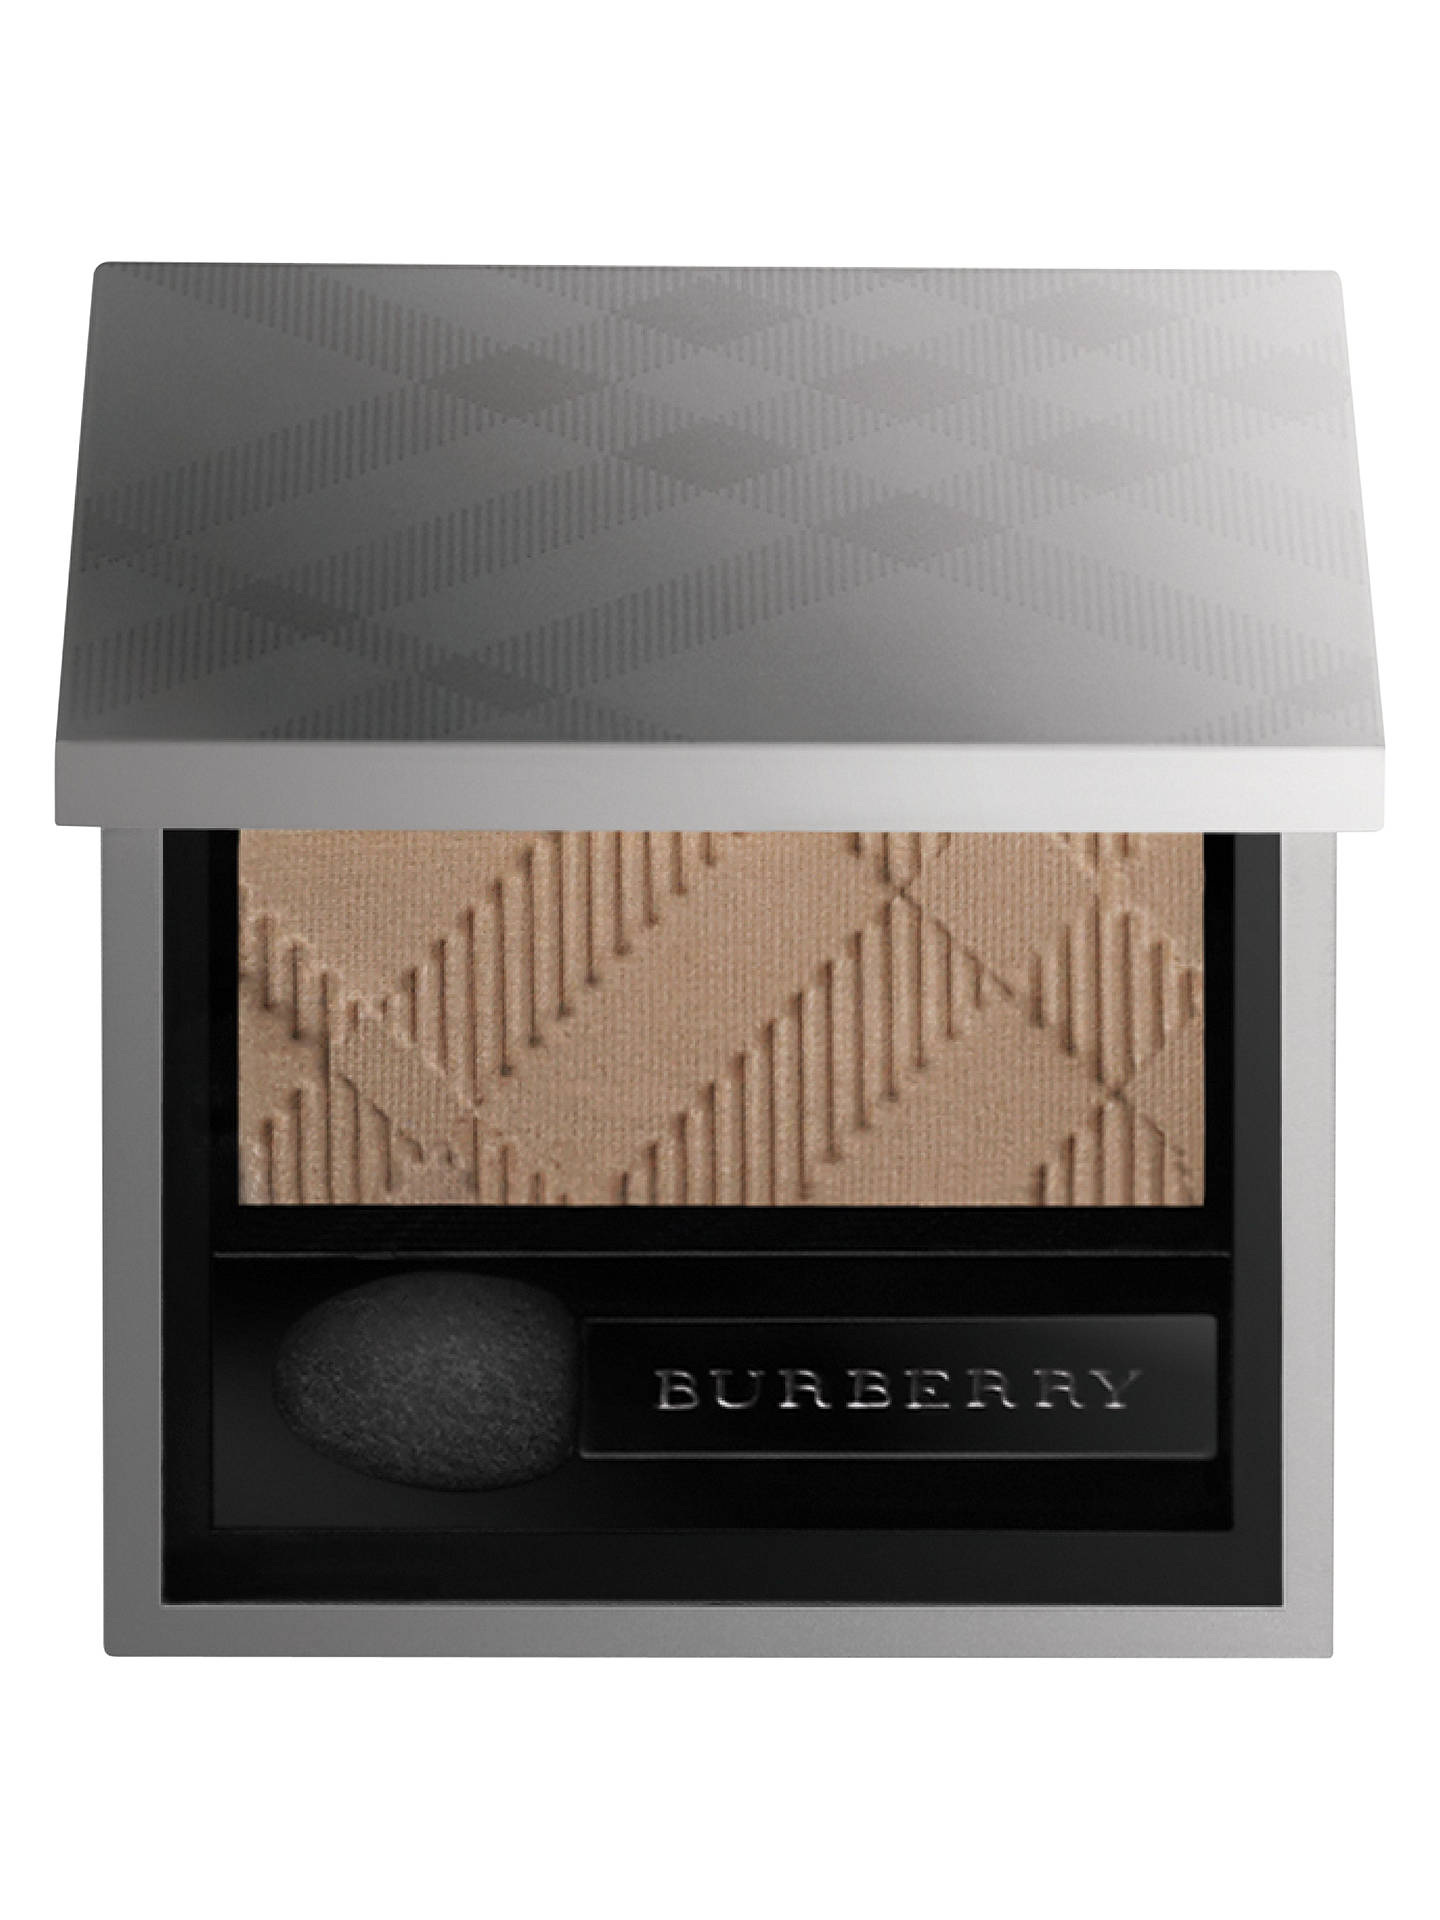 BuyBurberry Sheer Eyeshadow, Taupe Brown No.07 Online at johnlewis.com